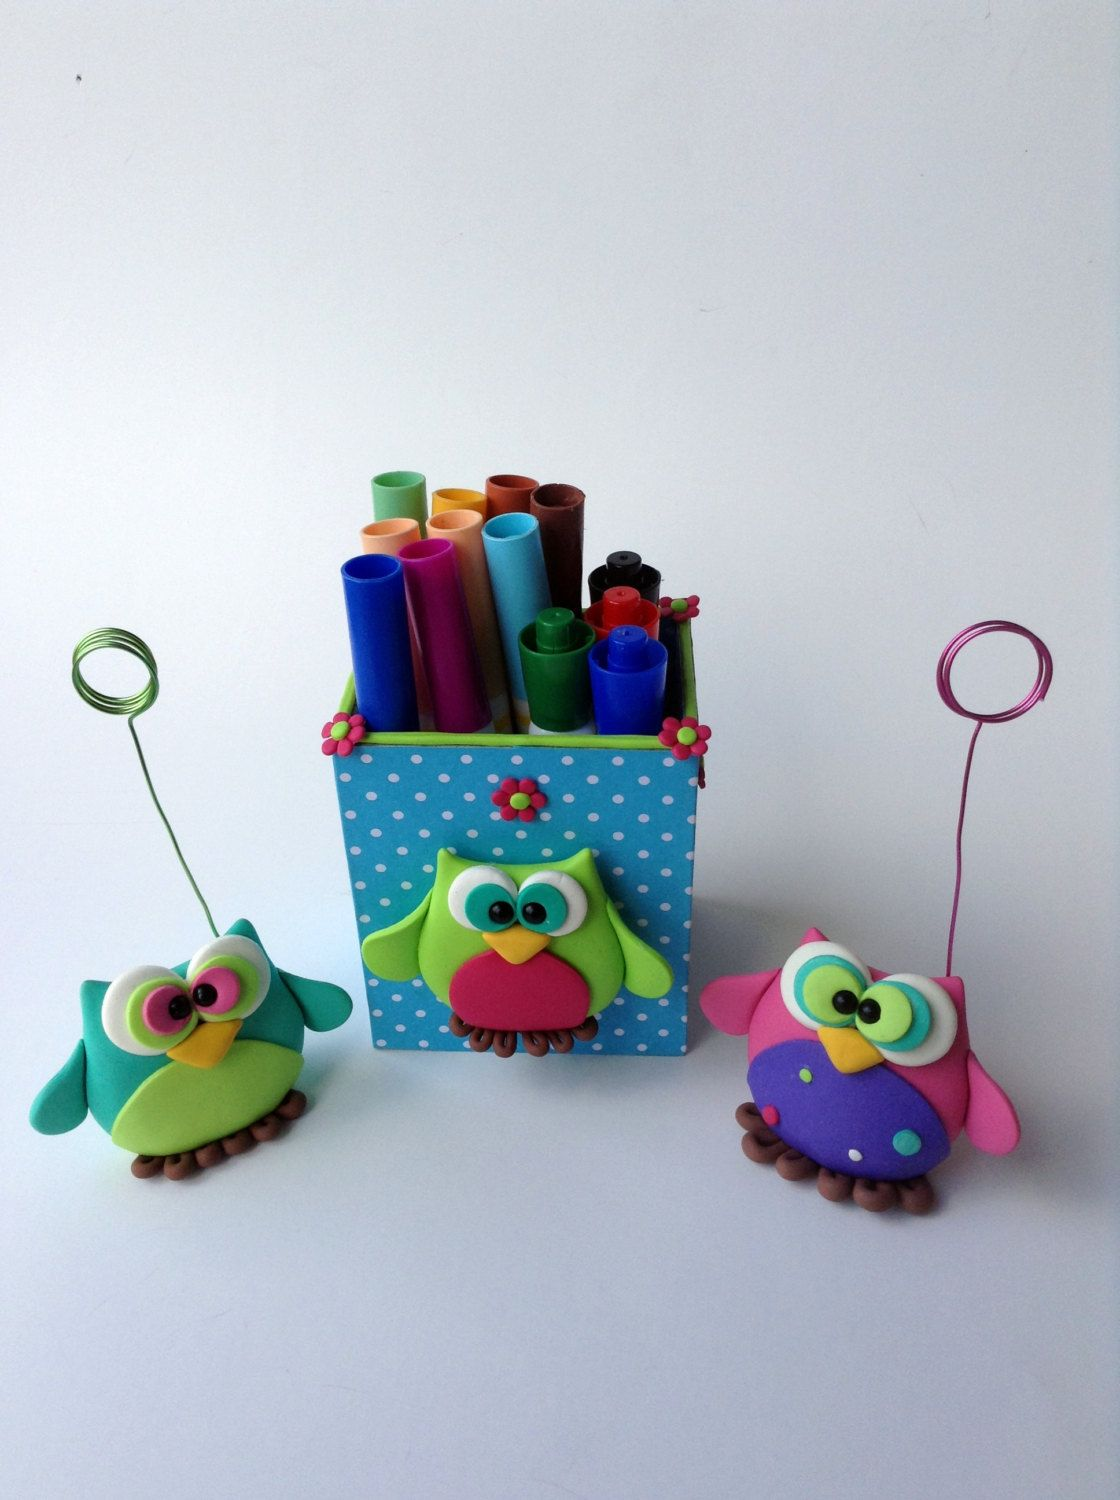 Ordinaire Owl Office Desk Set Polymer Clay Owl Office Decor Green Purple Blue Pink Owl  Set